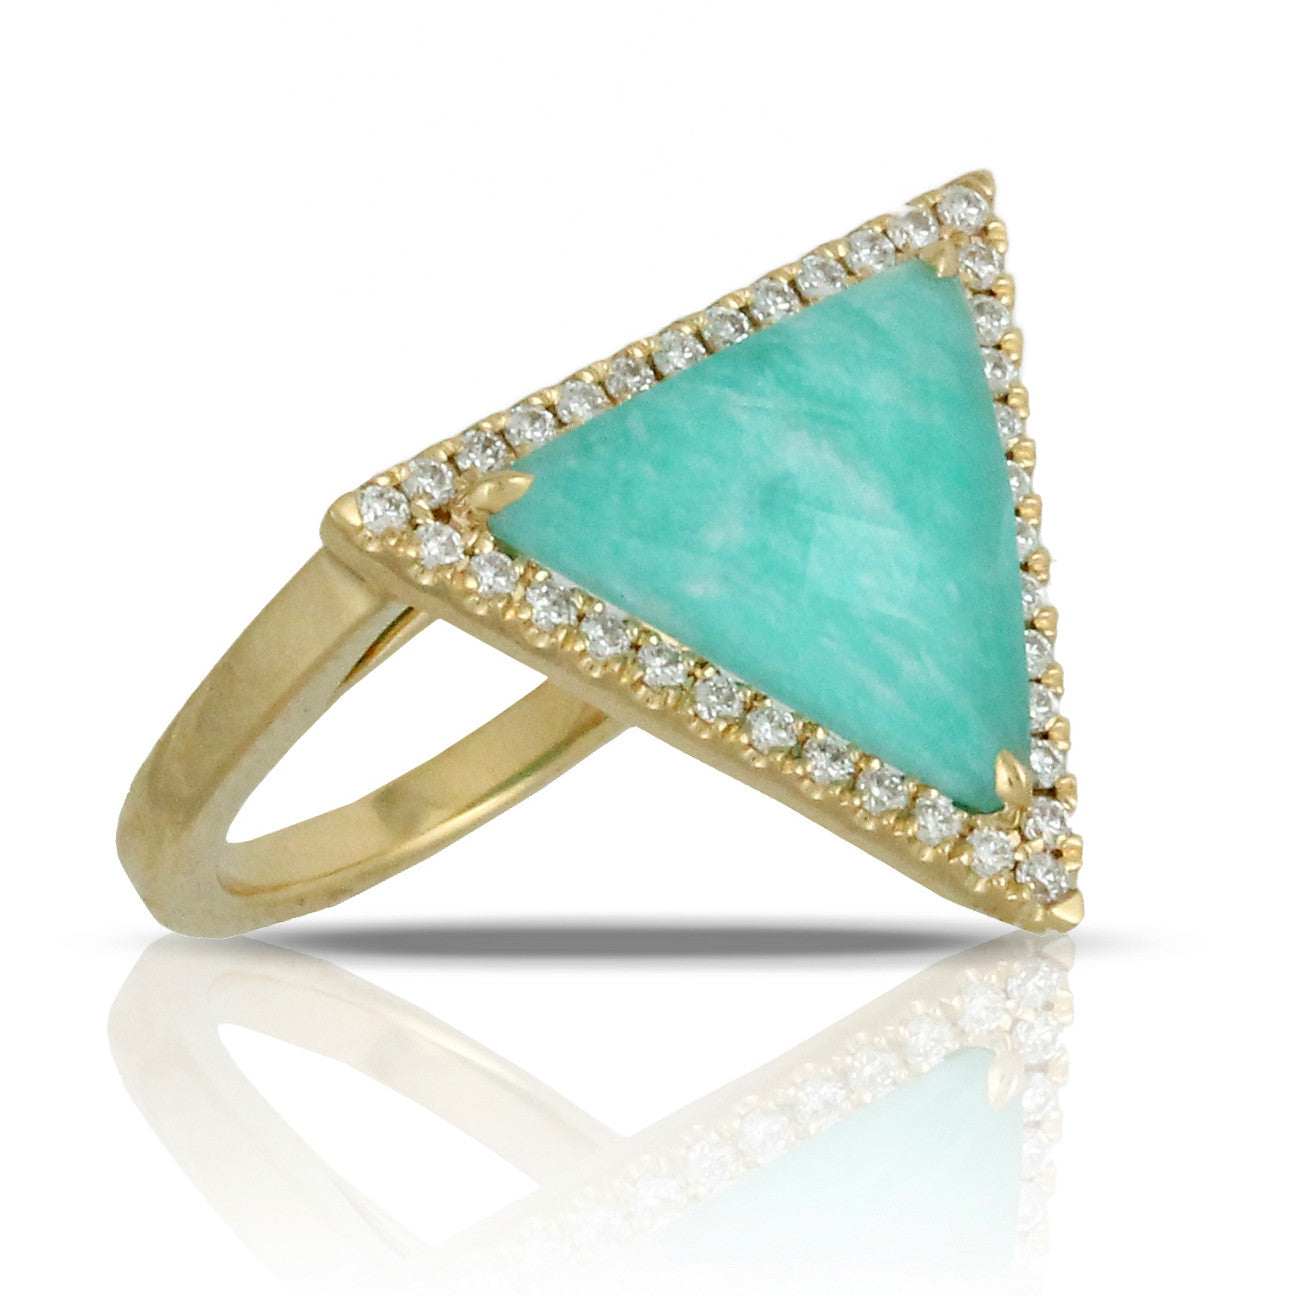 Doves Amazon Breeze 18k Yellow Gold Ring with Amazonite, White Topaz and Pave Set Diamonds